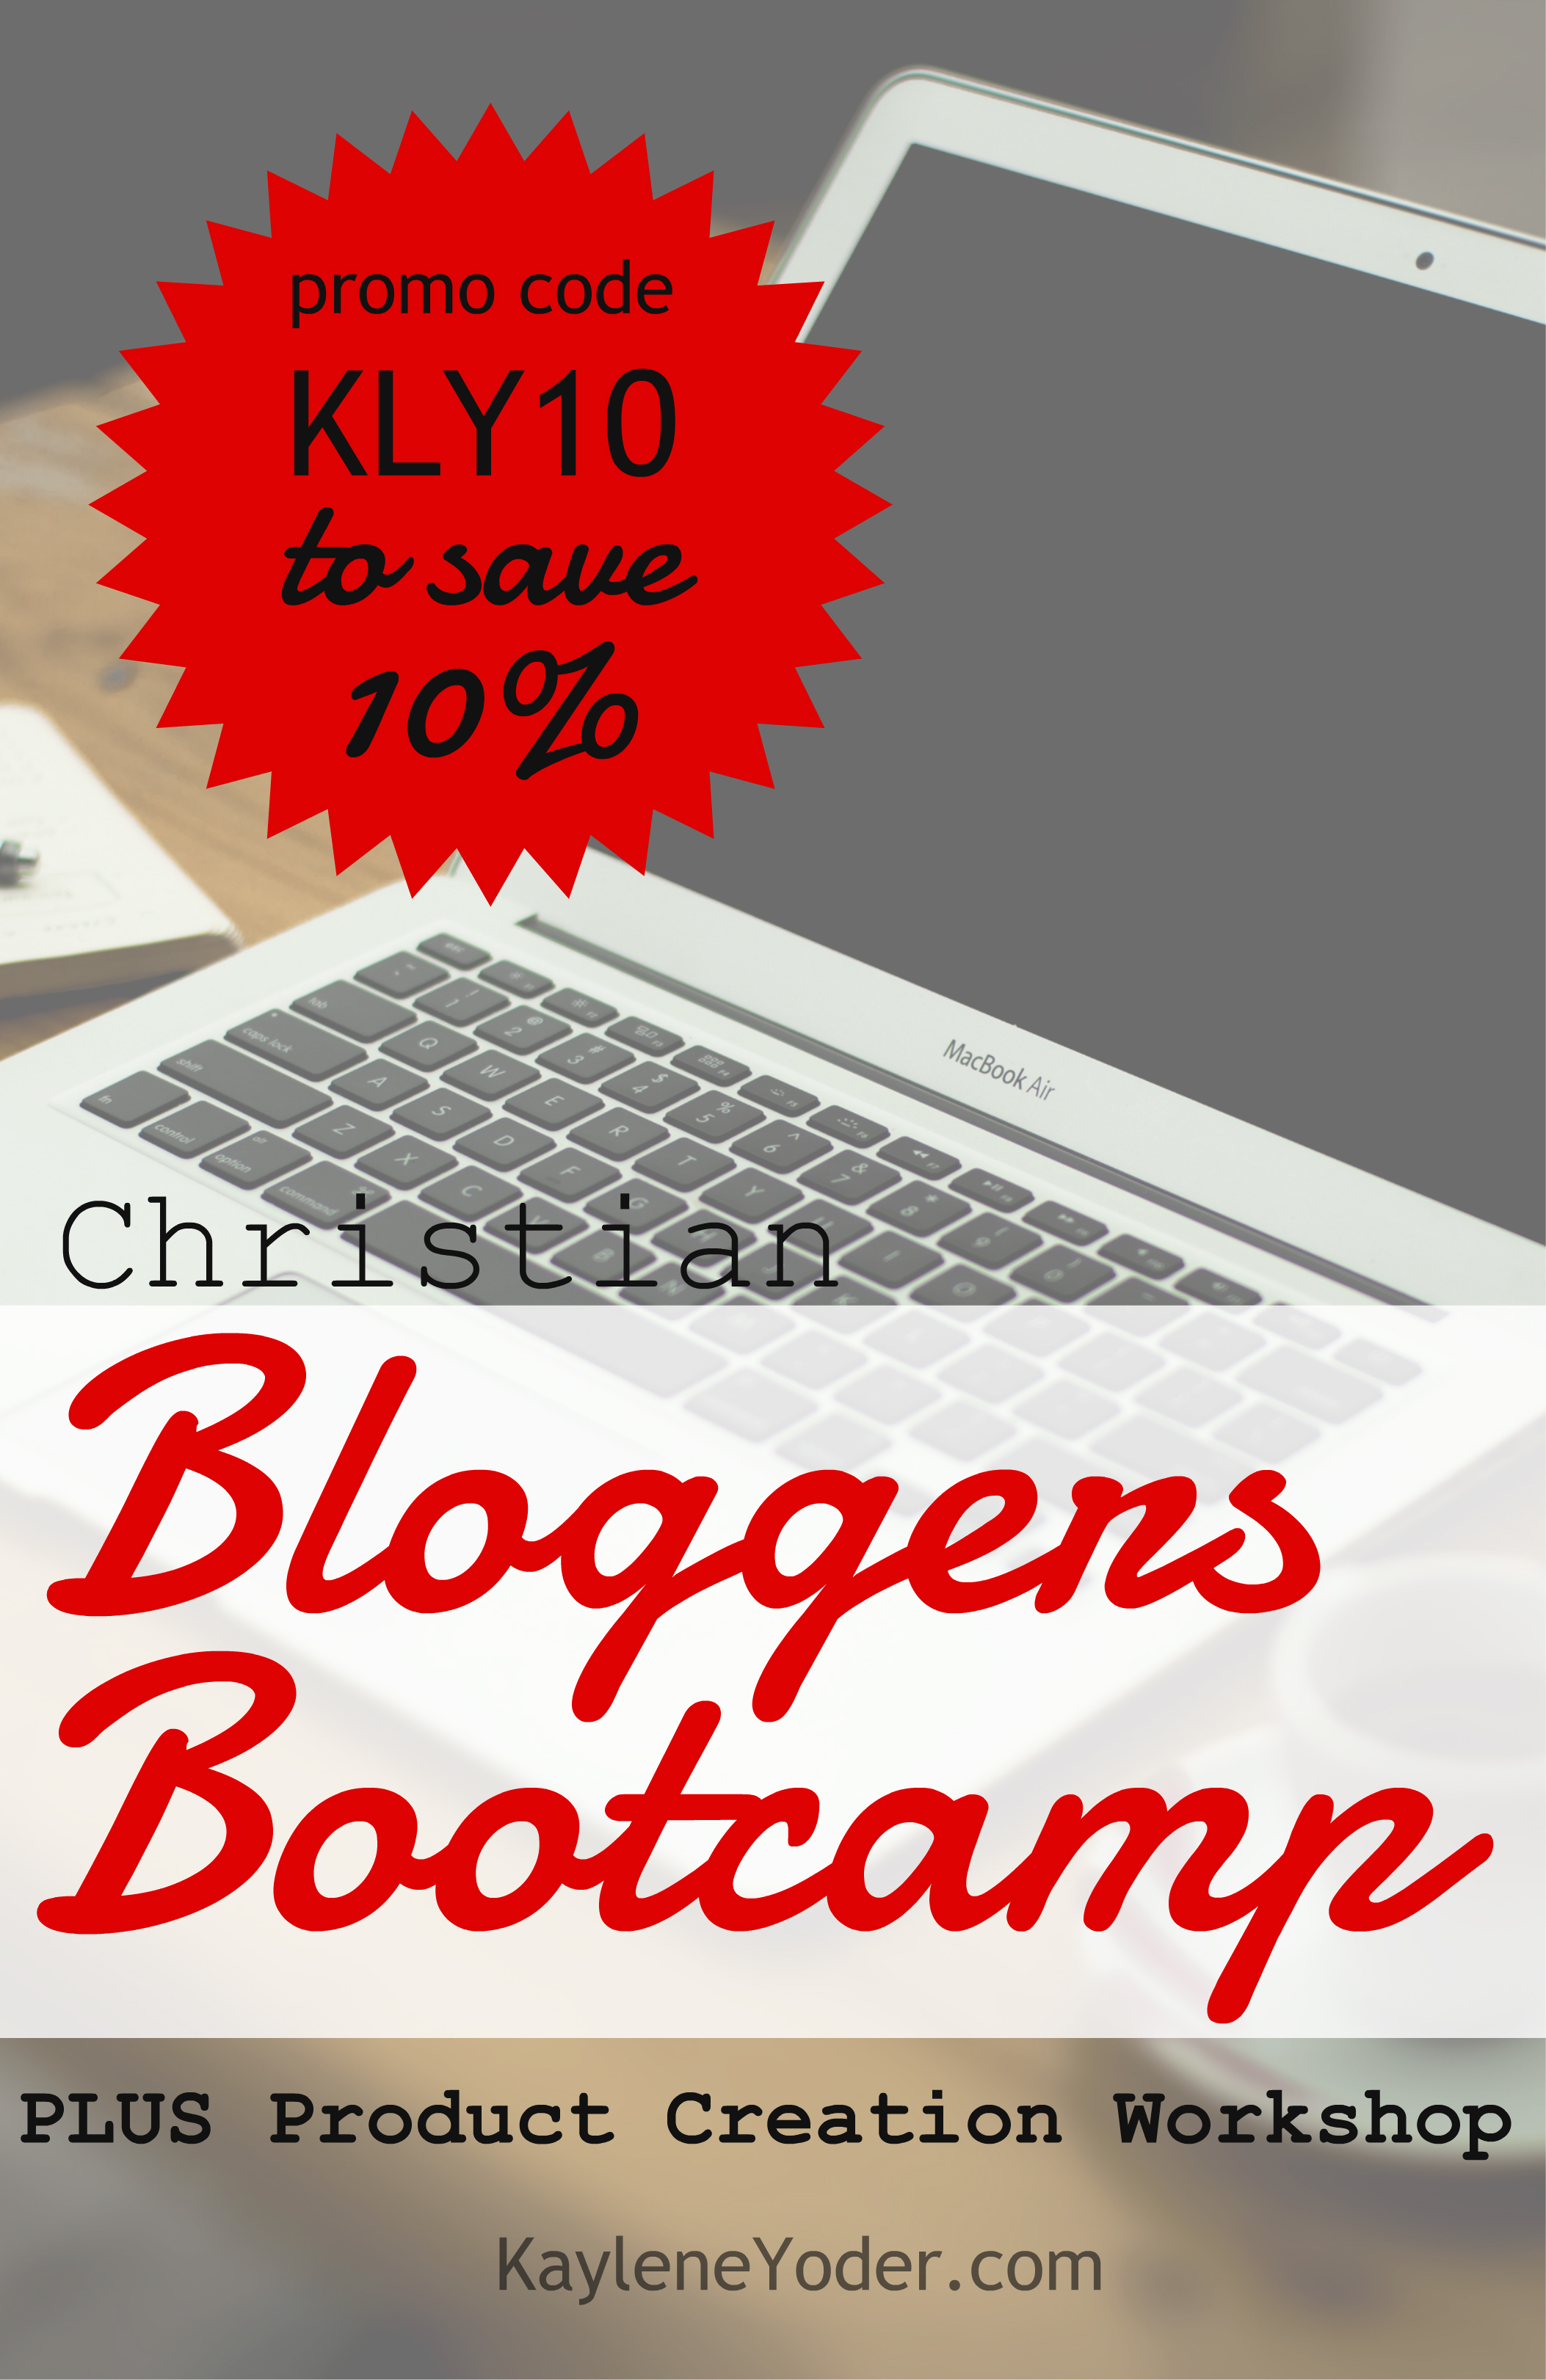 Sometimes you just need to go through a good bootcamp to get blogging figured out! Christian Bloggers Bootcamp sets the ground work for massive growth, Plus there is an all new Product Creation Workshop!